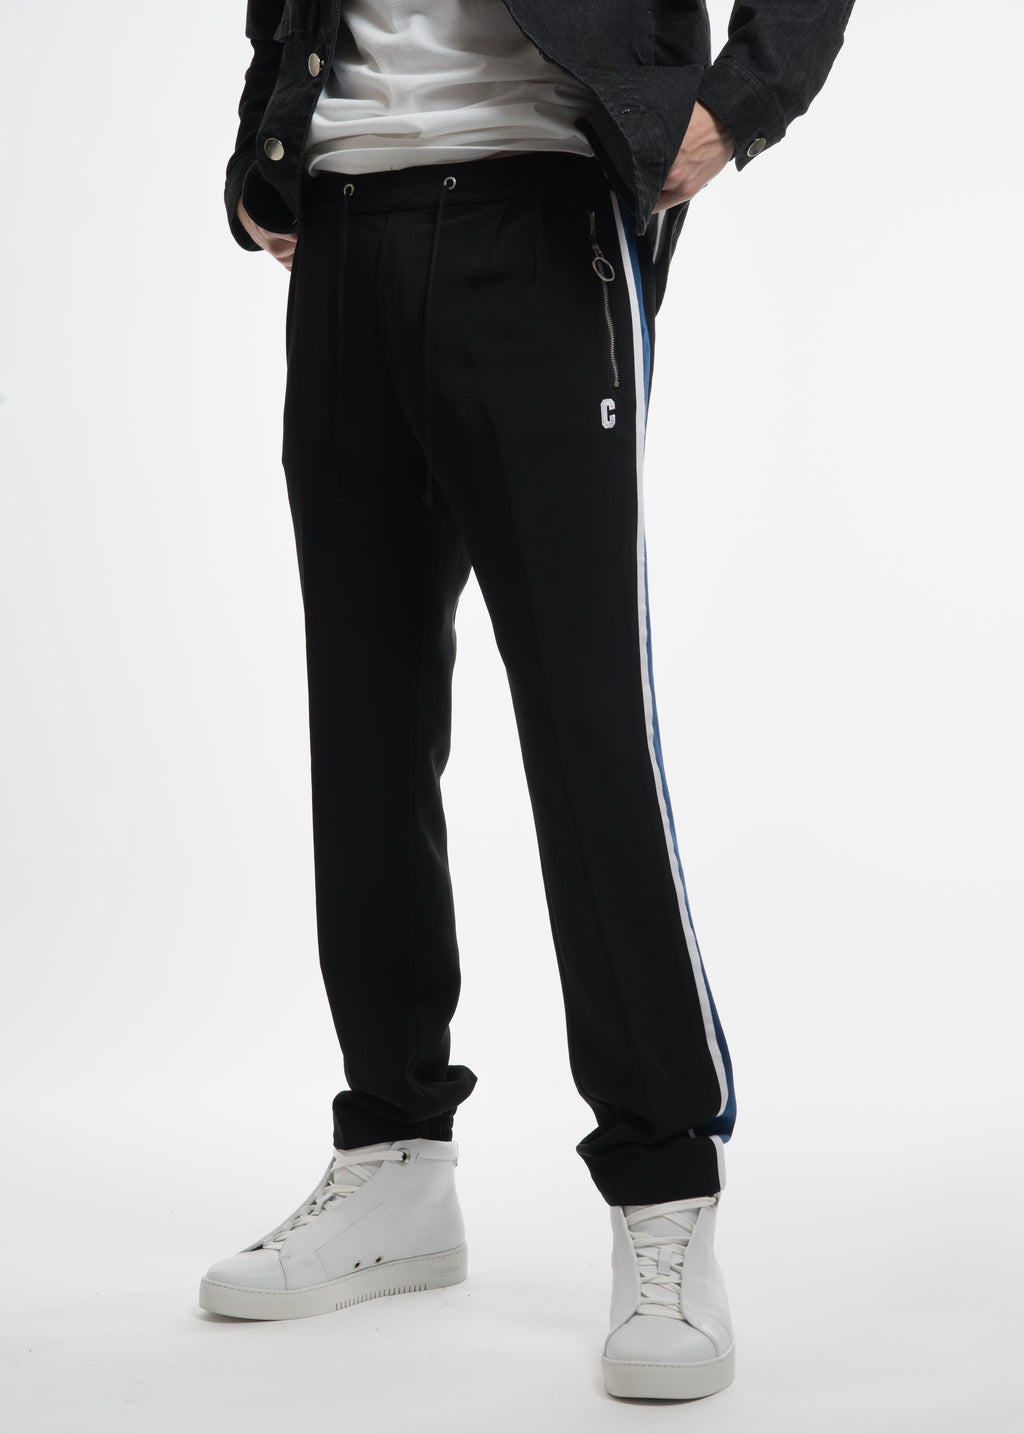 Black Side Stripe Lounge Pant